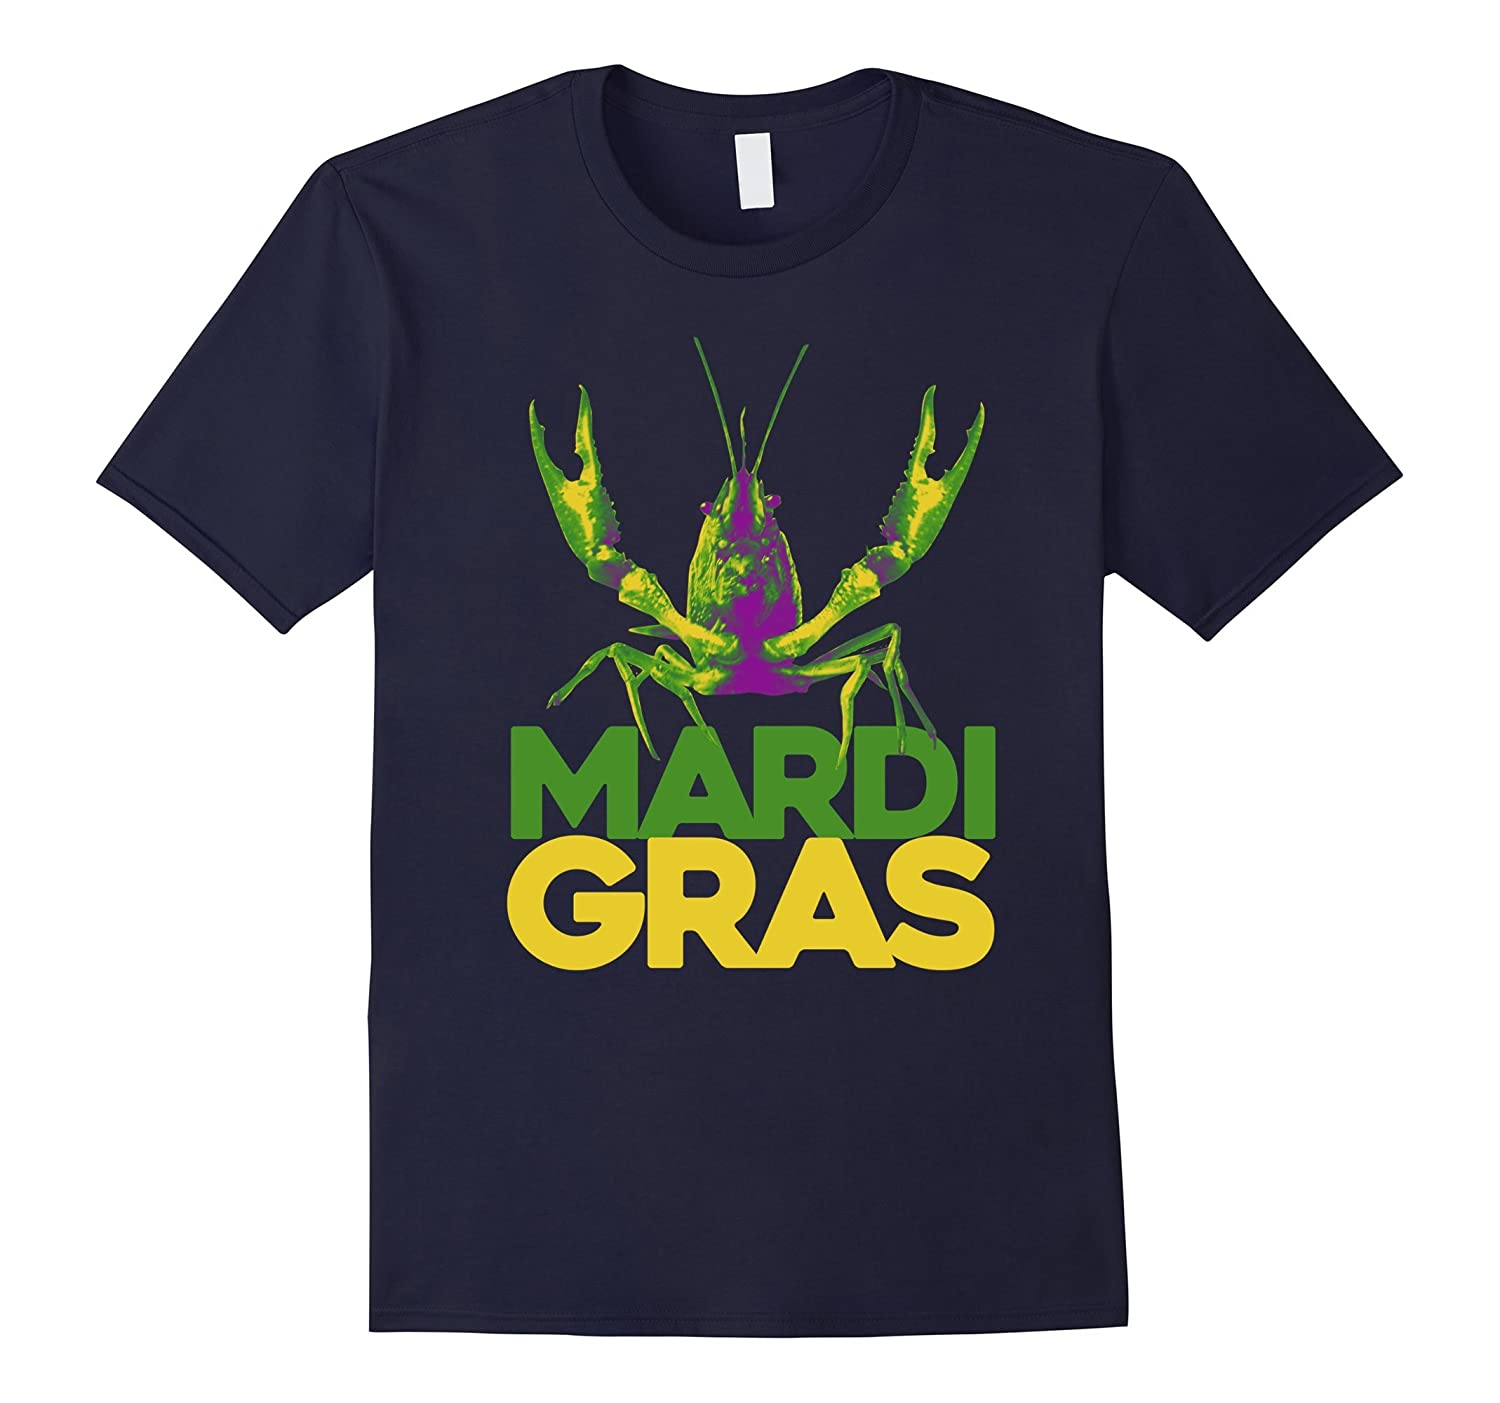 Mardi Gras Crawfish T Shirt New Orleans Lobster Party-ah my shirt one gift